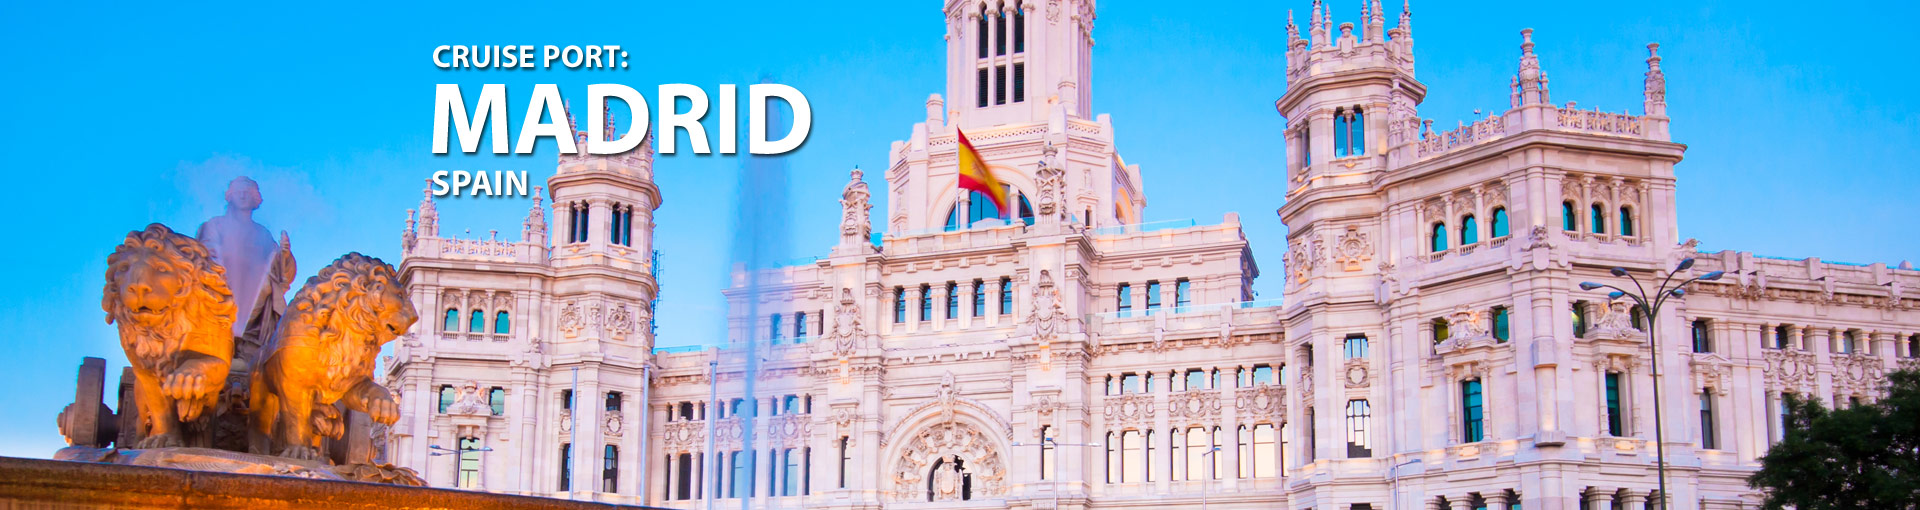 Cruises from Madrid, Spain